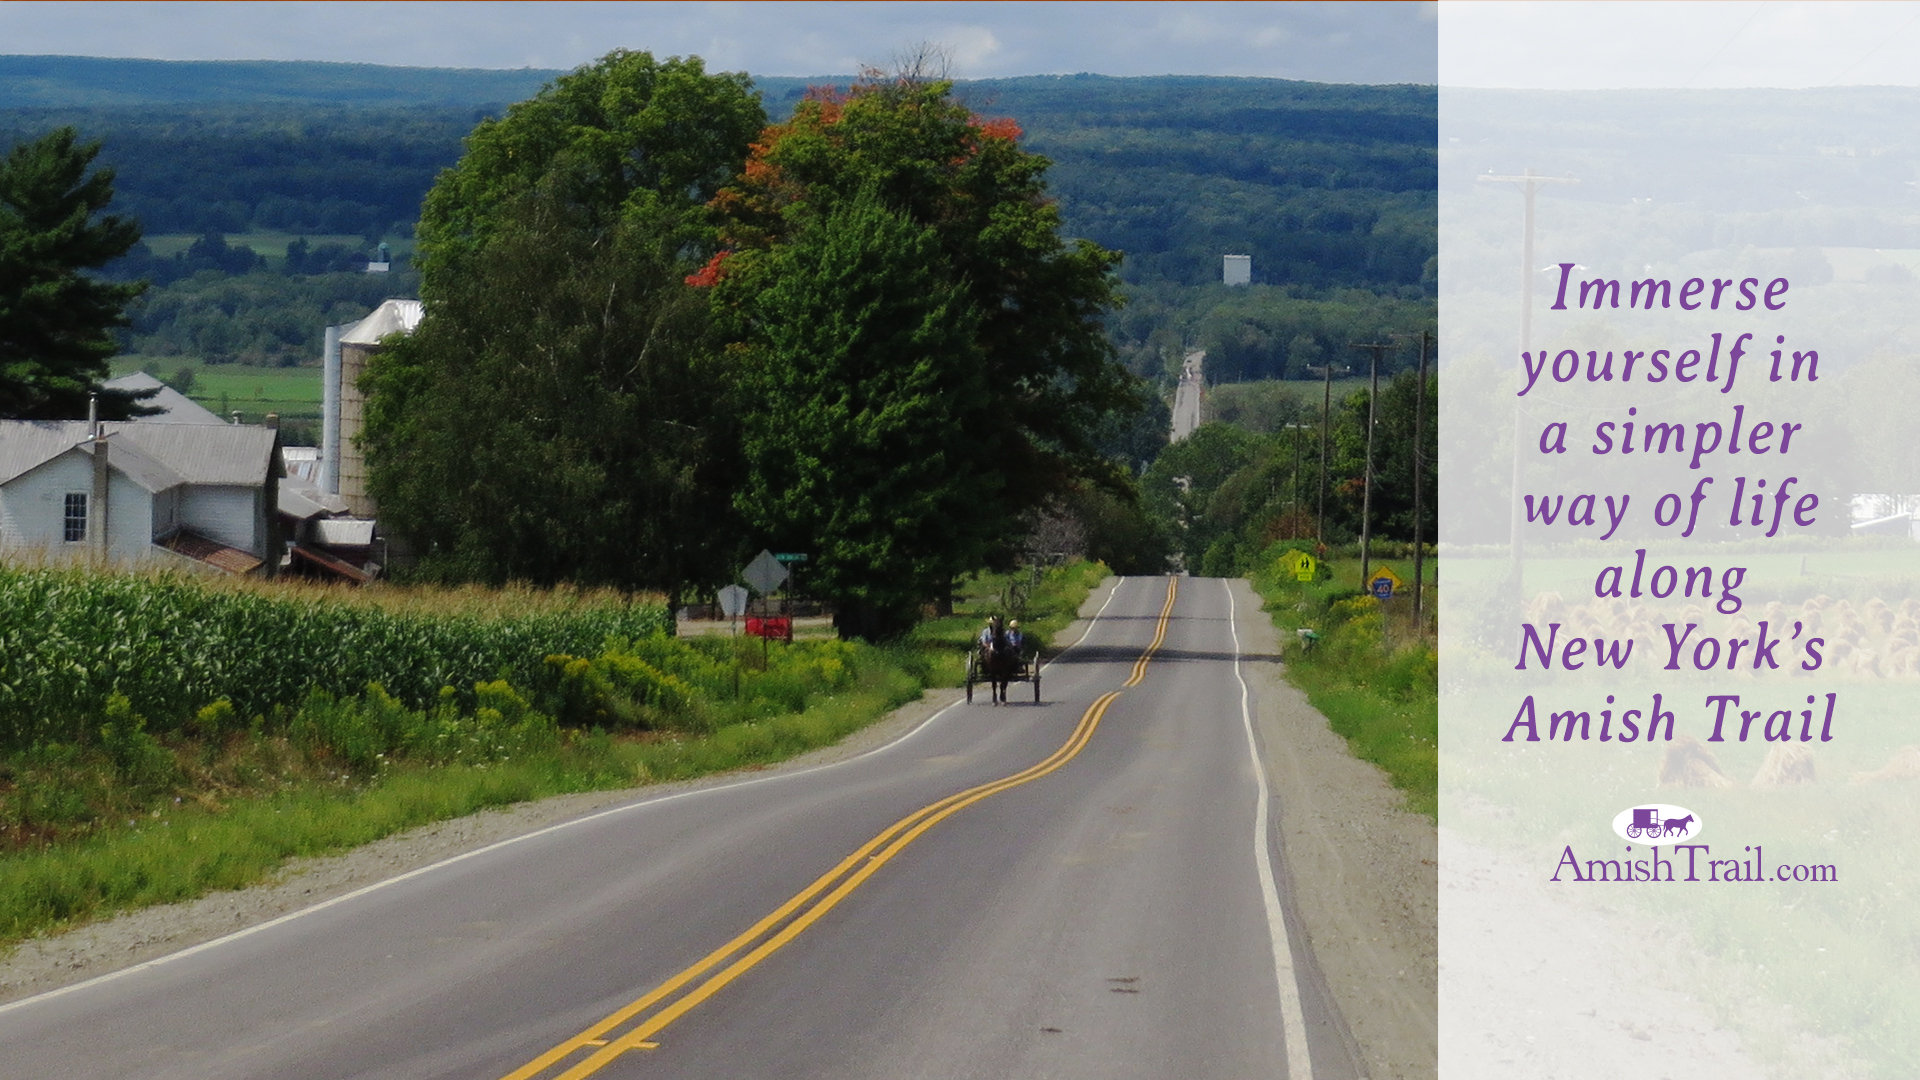 NY's Amish Trail in early Fall